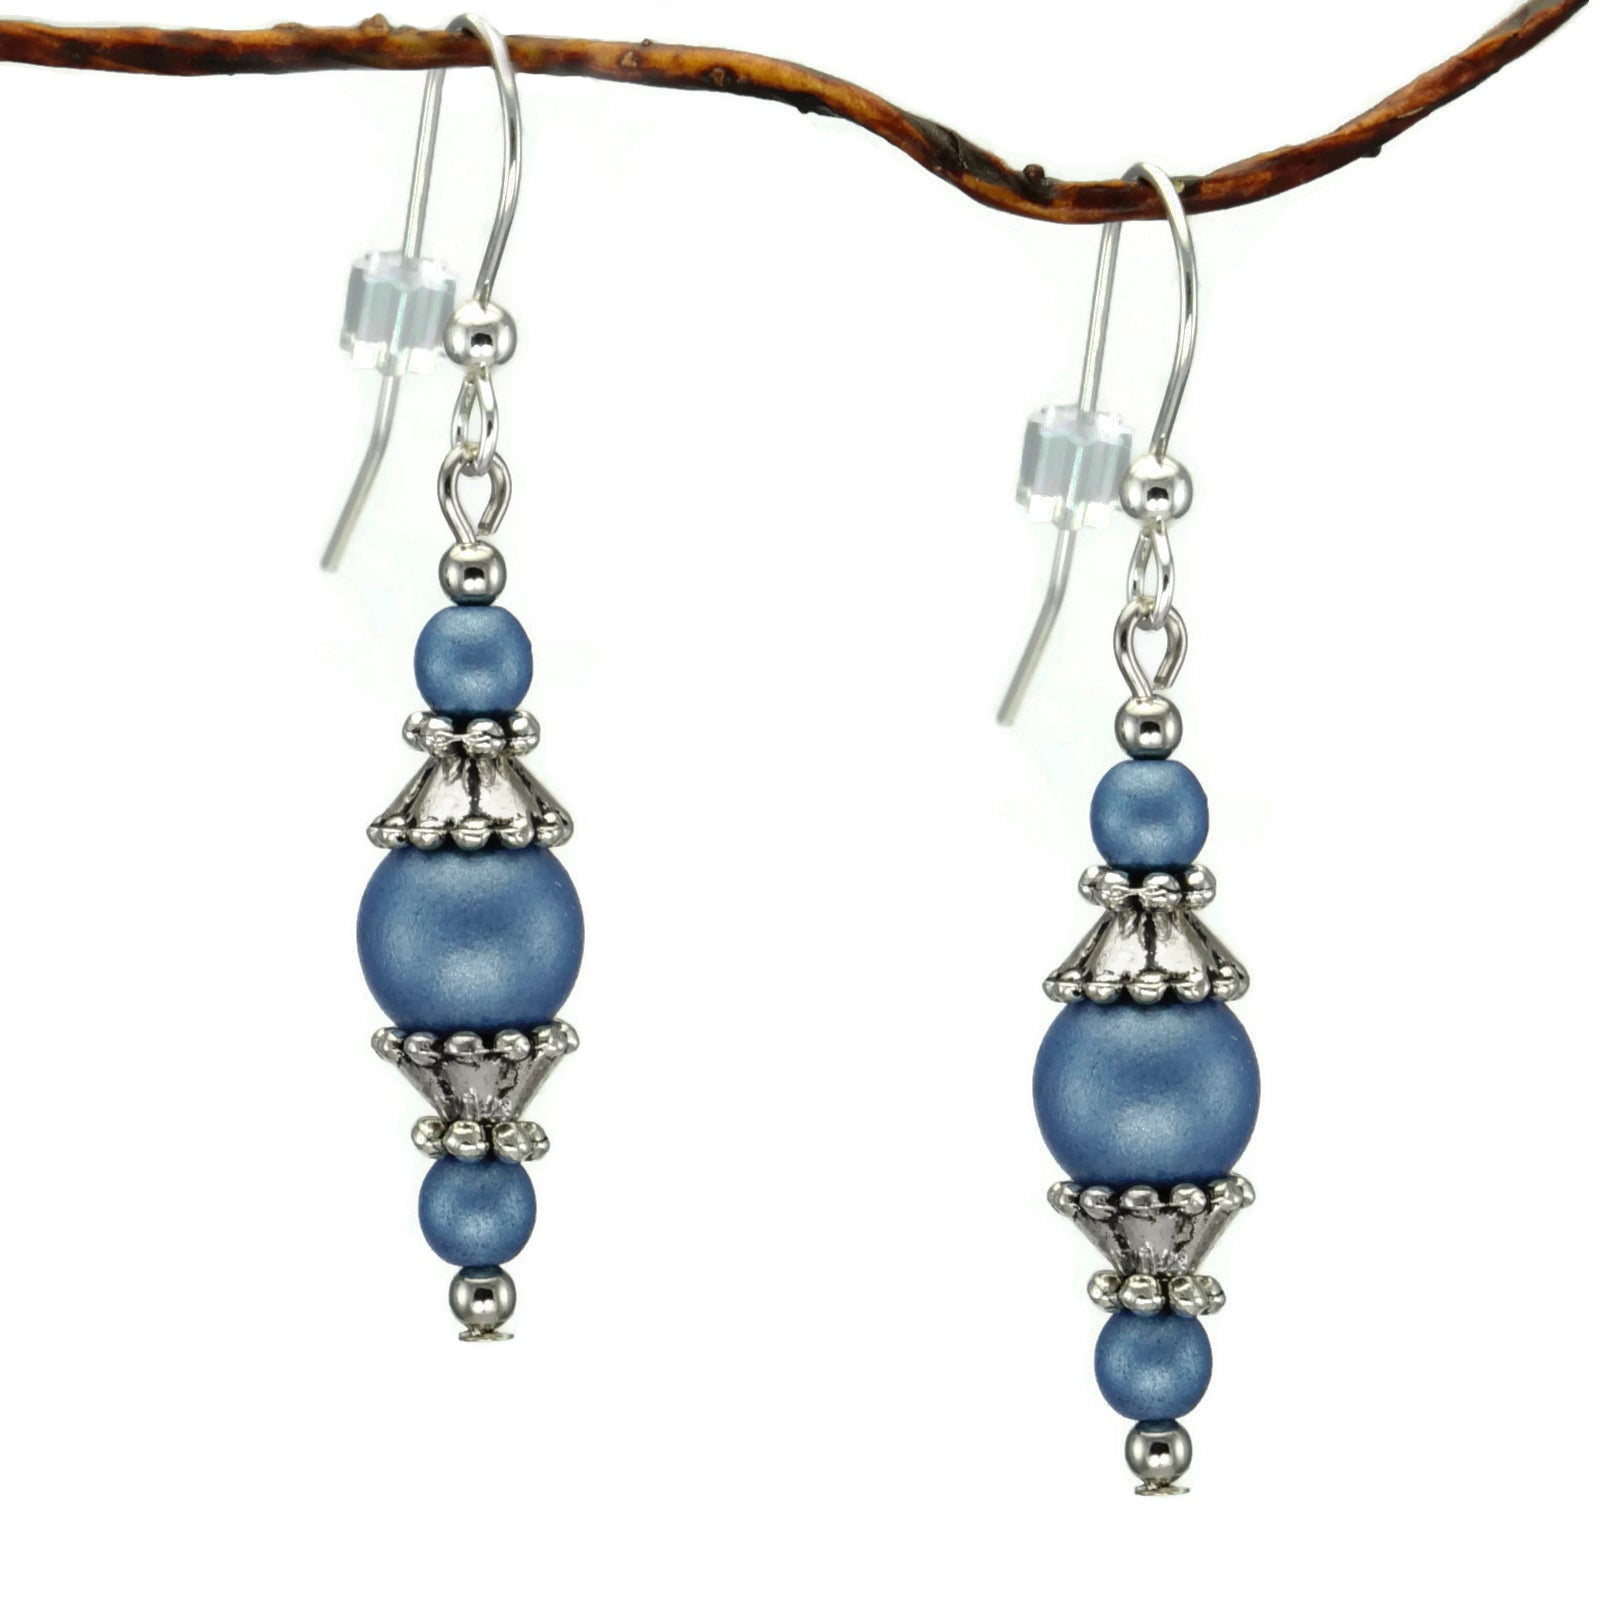 maine fused glass s oldpool marie in these opaque j made lisa product blue are earrings web